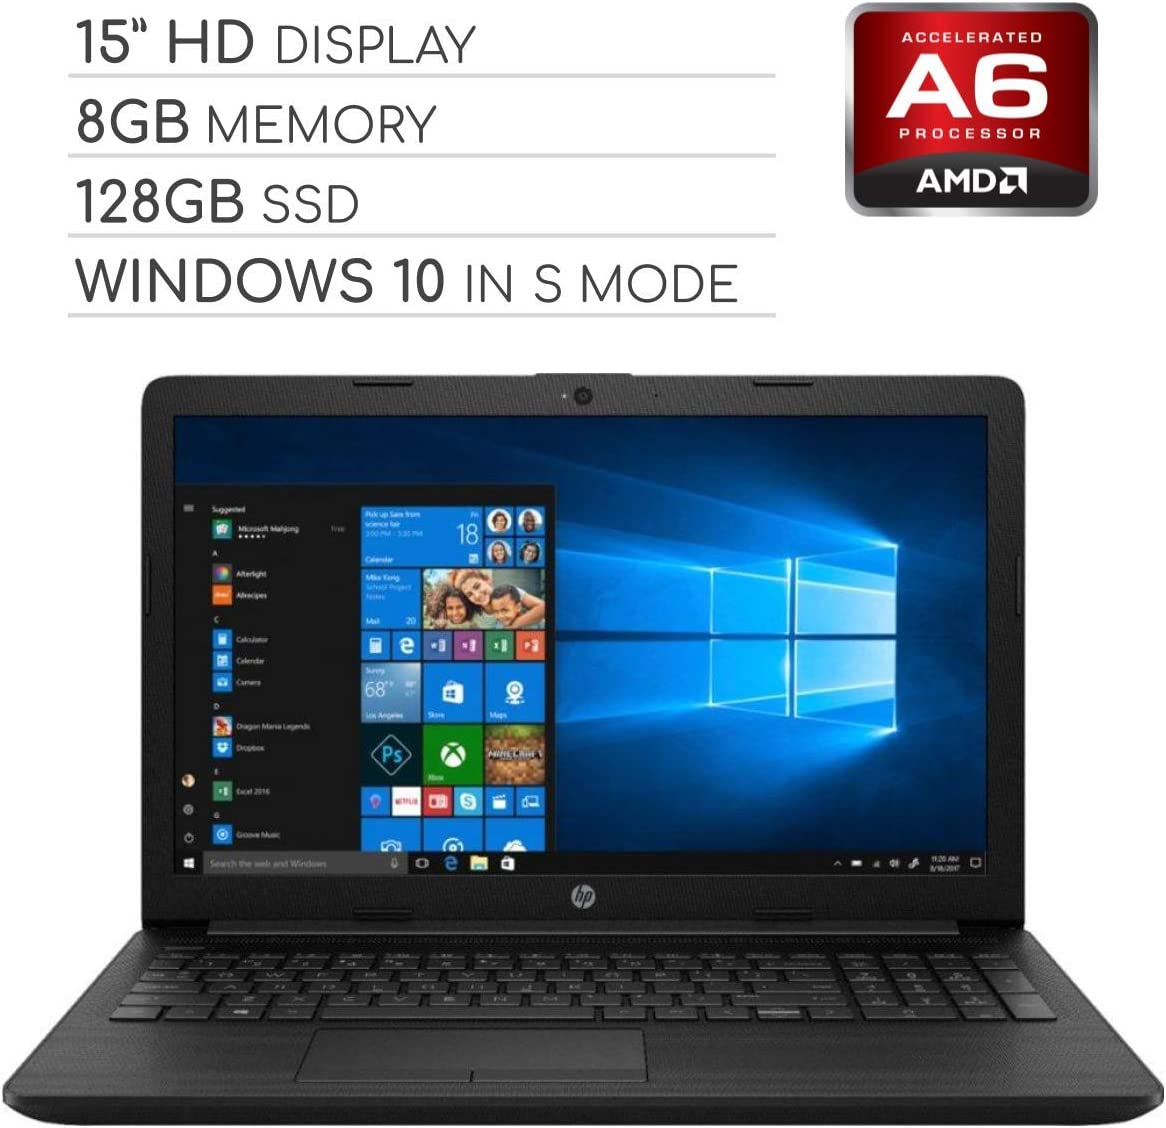 HP Pavilion 2019 15.6 HD LED Laptop Notebook Computer PC, 2-Core AMD A6 2.6GHz, 8GB DDR4 RAM, 128GB SSD, DVD, HDMI, RJ-45, USB 3.0, Bluetooth, Webcam, Wi-Fi, Windows 10 Home in S Mode